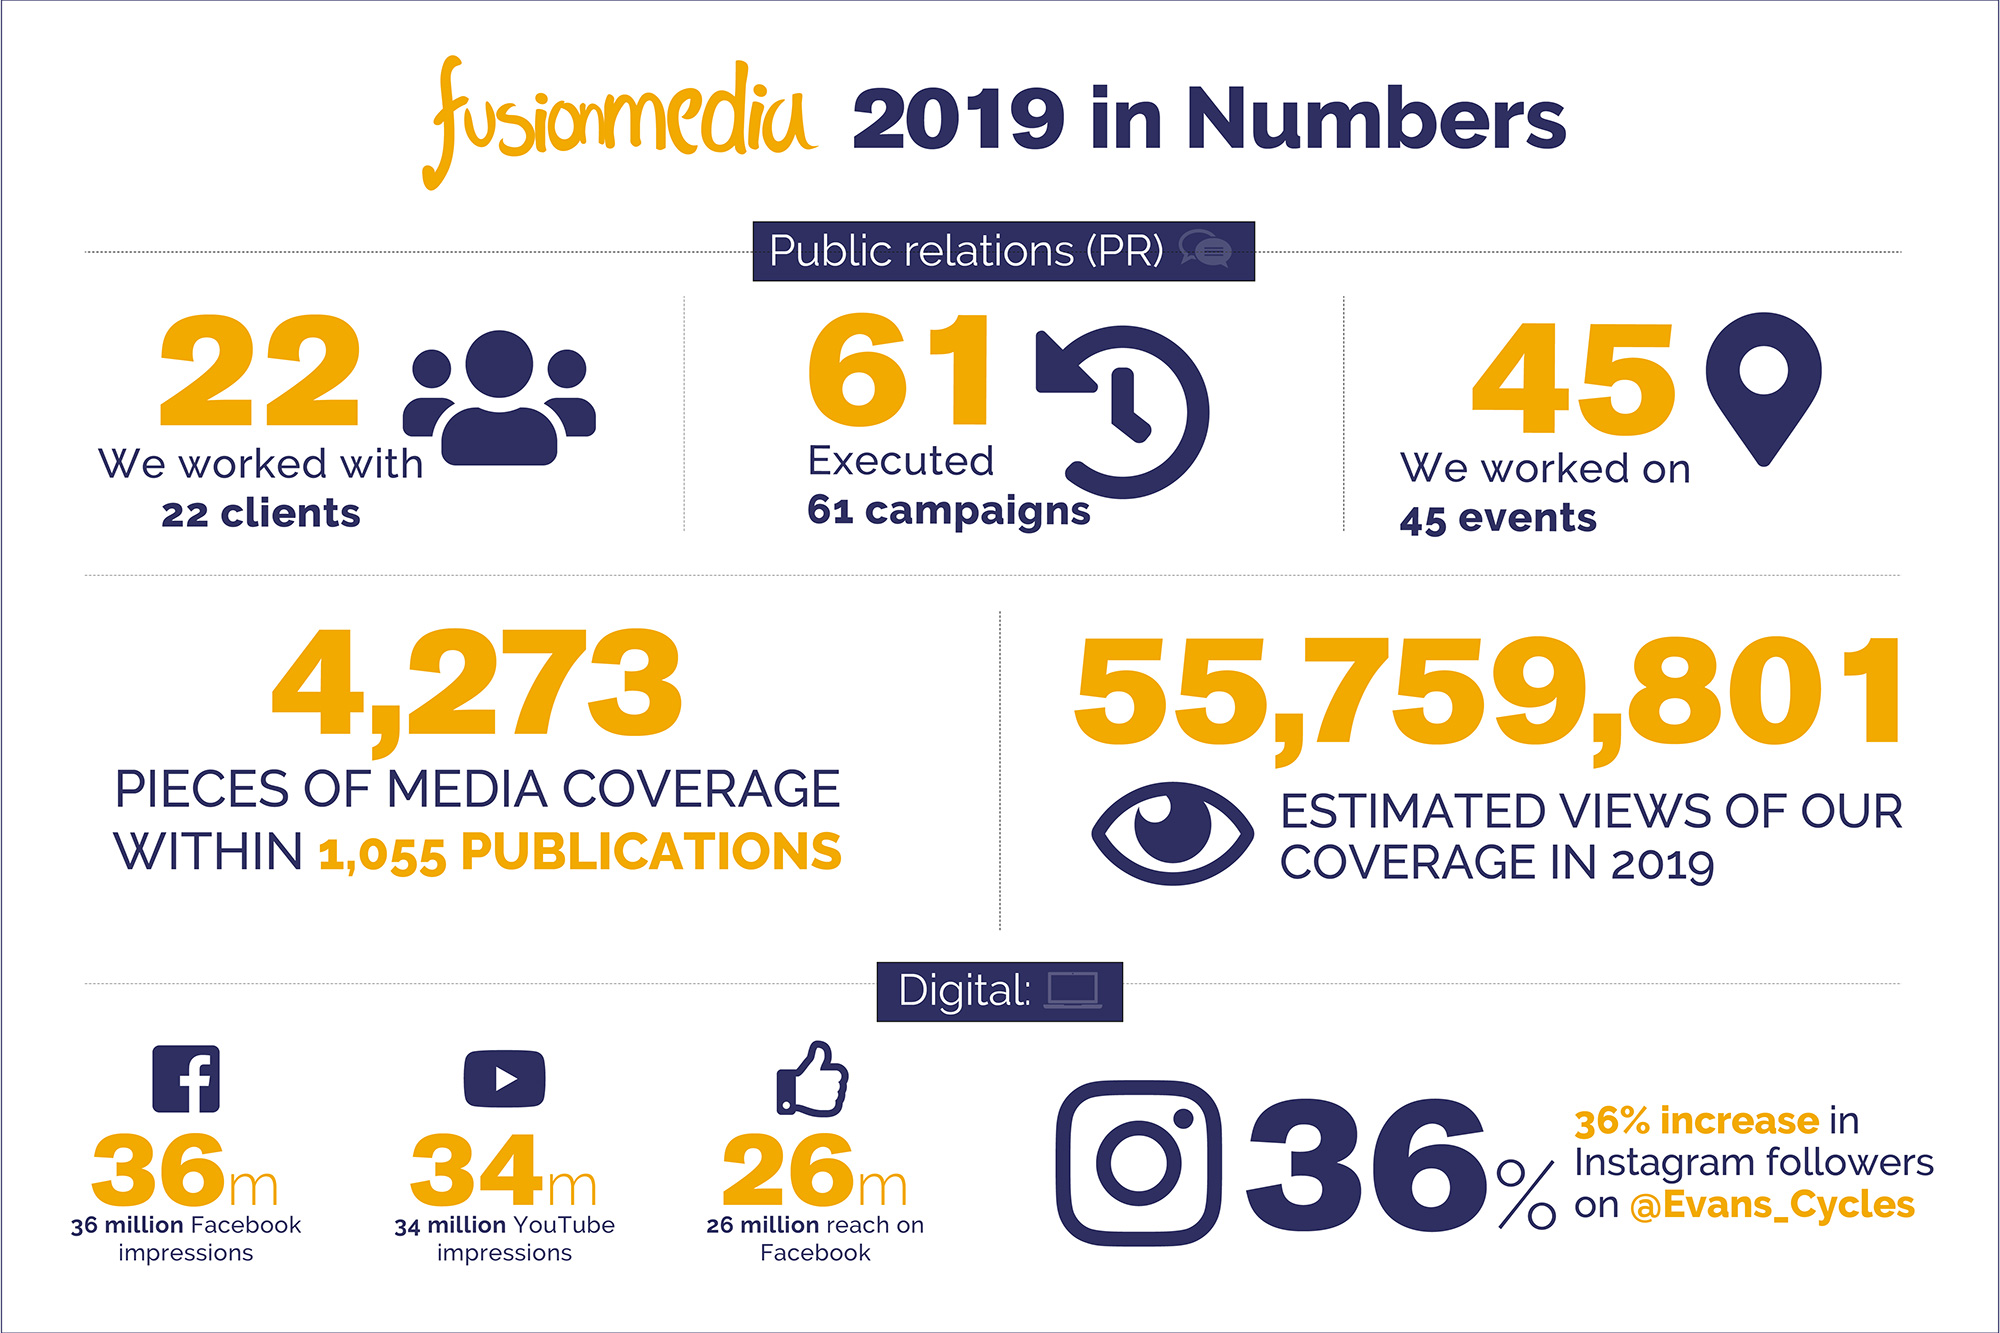 Fusion Media: Our 2019 in Numbers